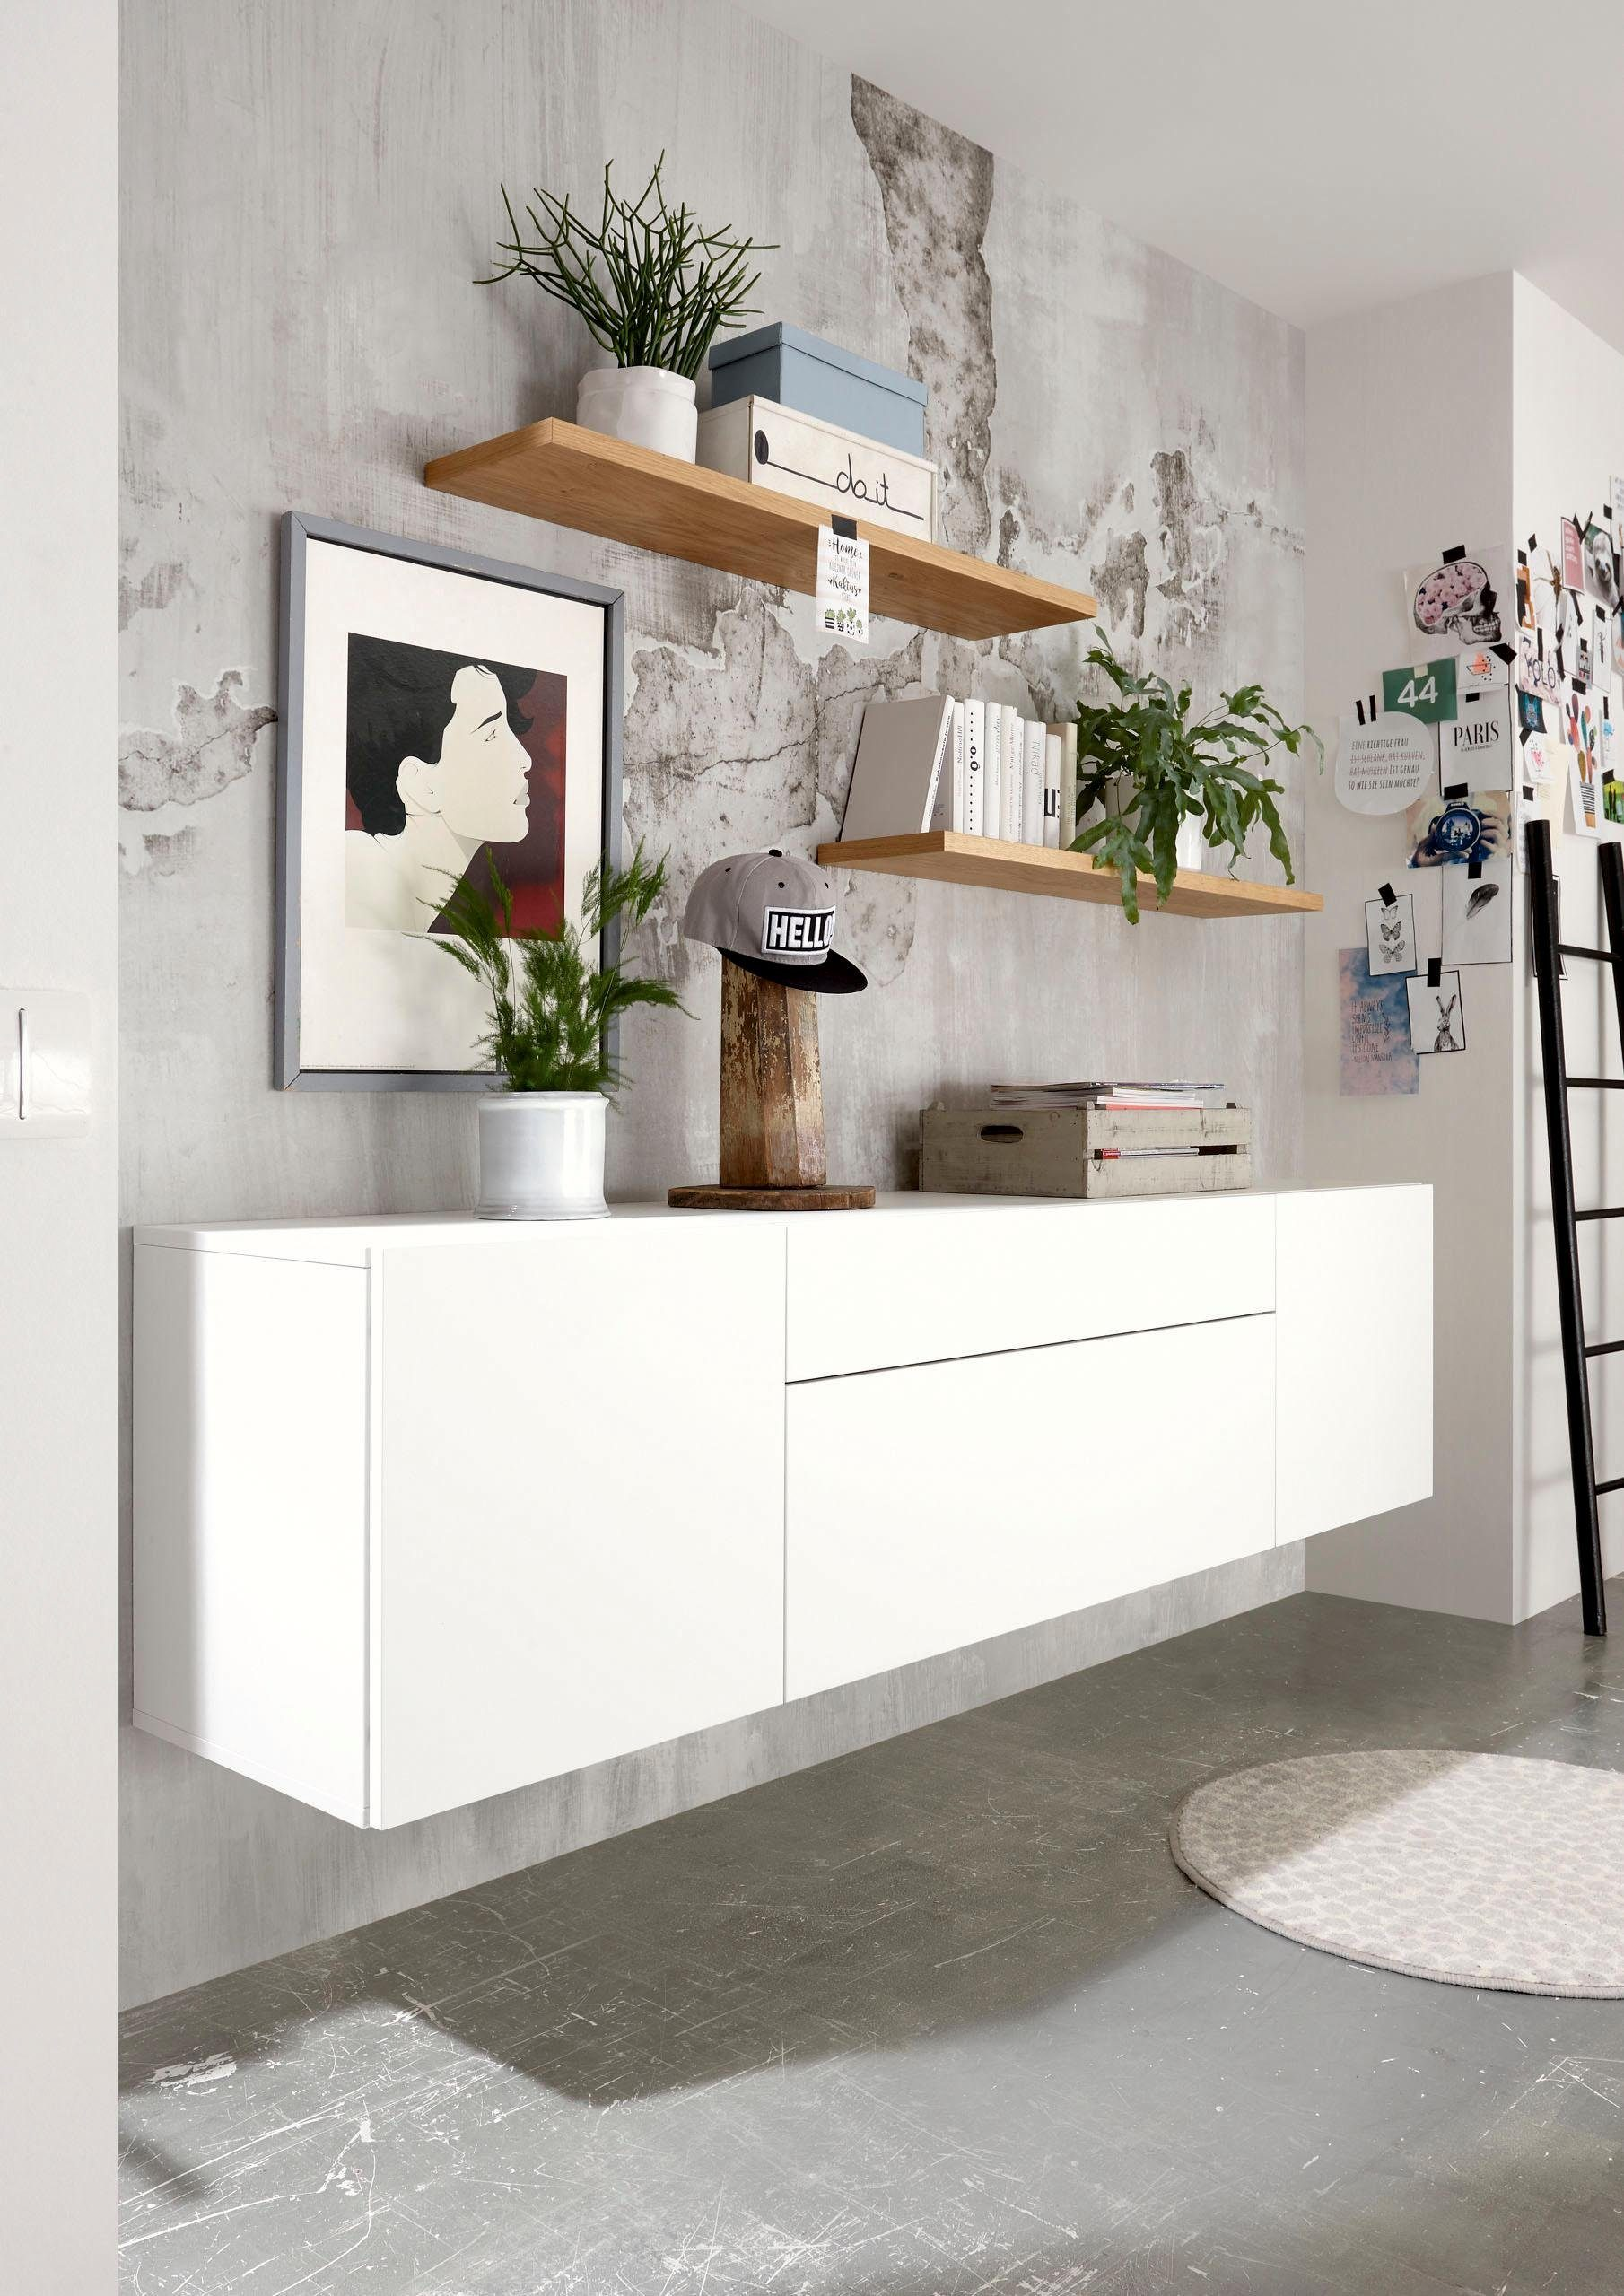 Tischleuchte Kinder Now! By Hülsta Sideboard »now! For You«, Für Wandmontage